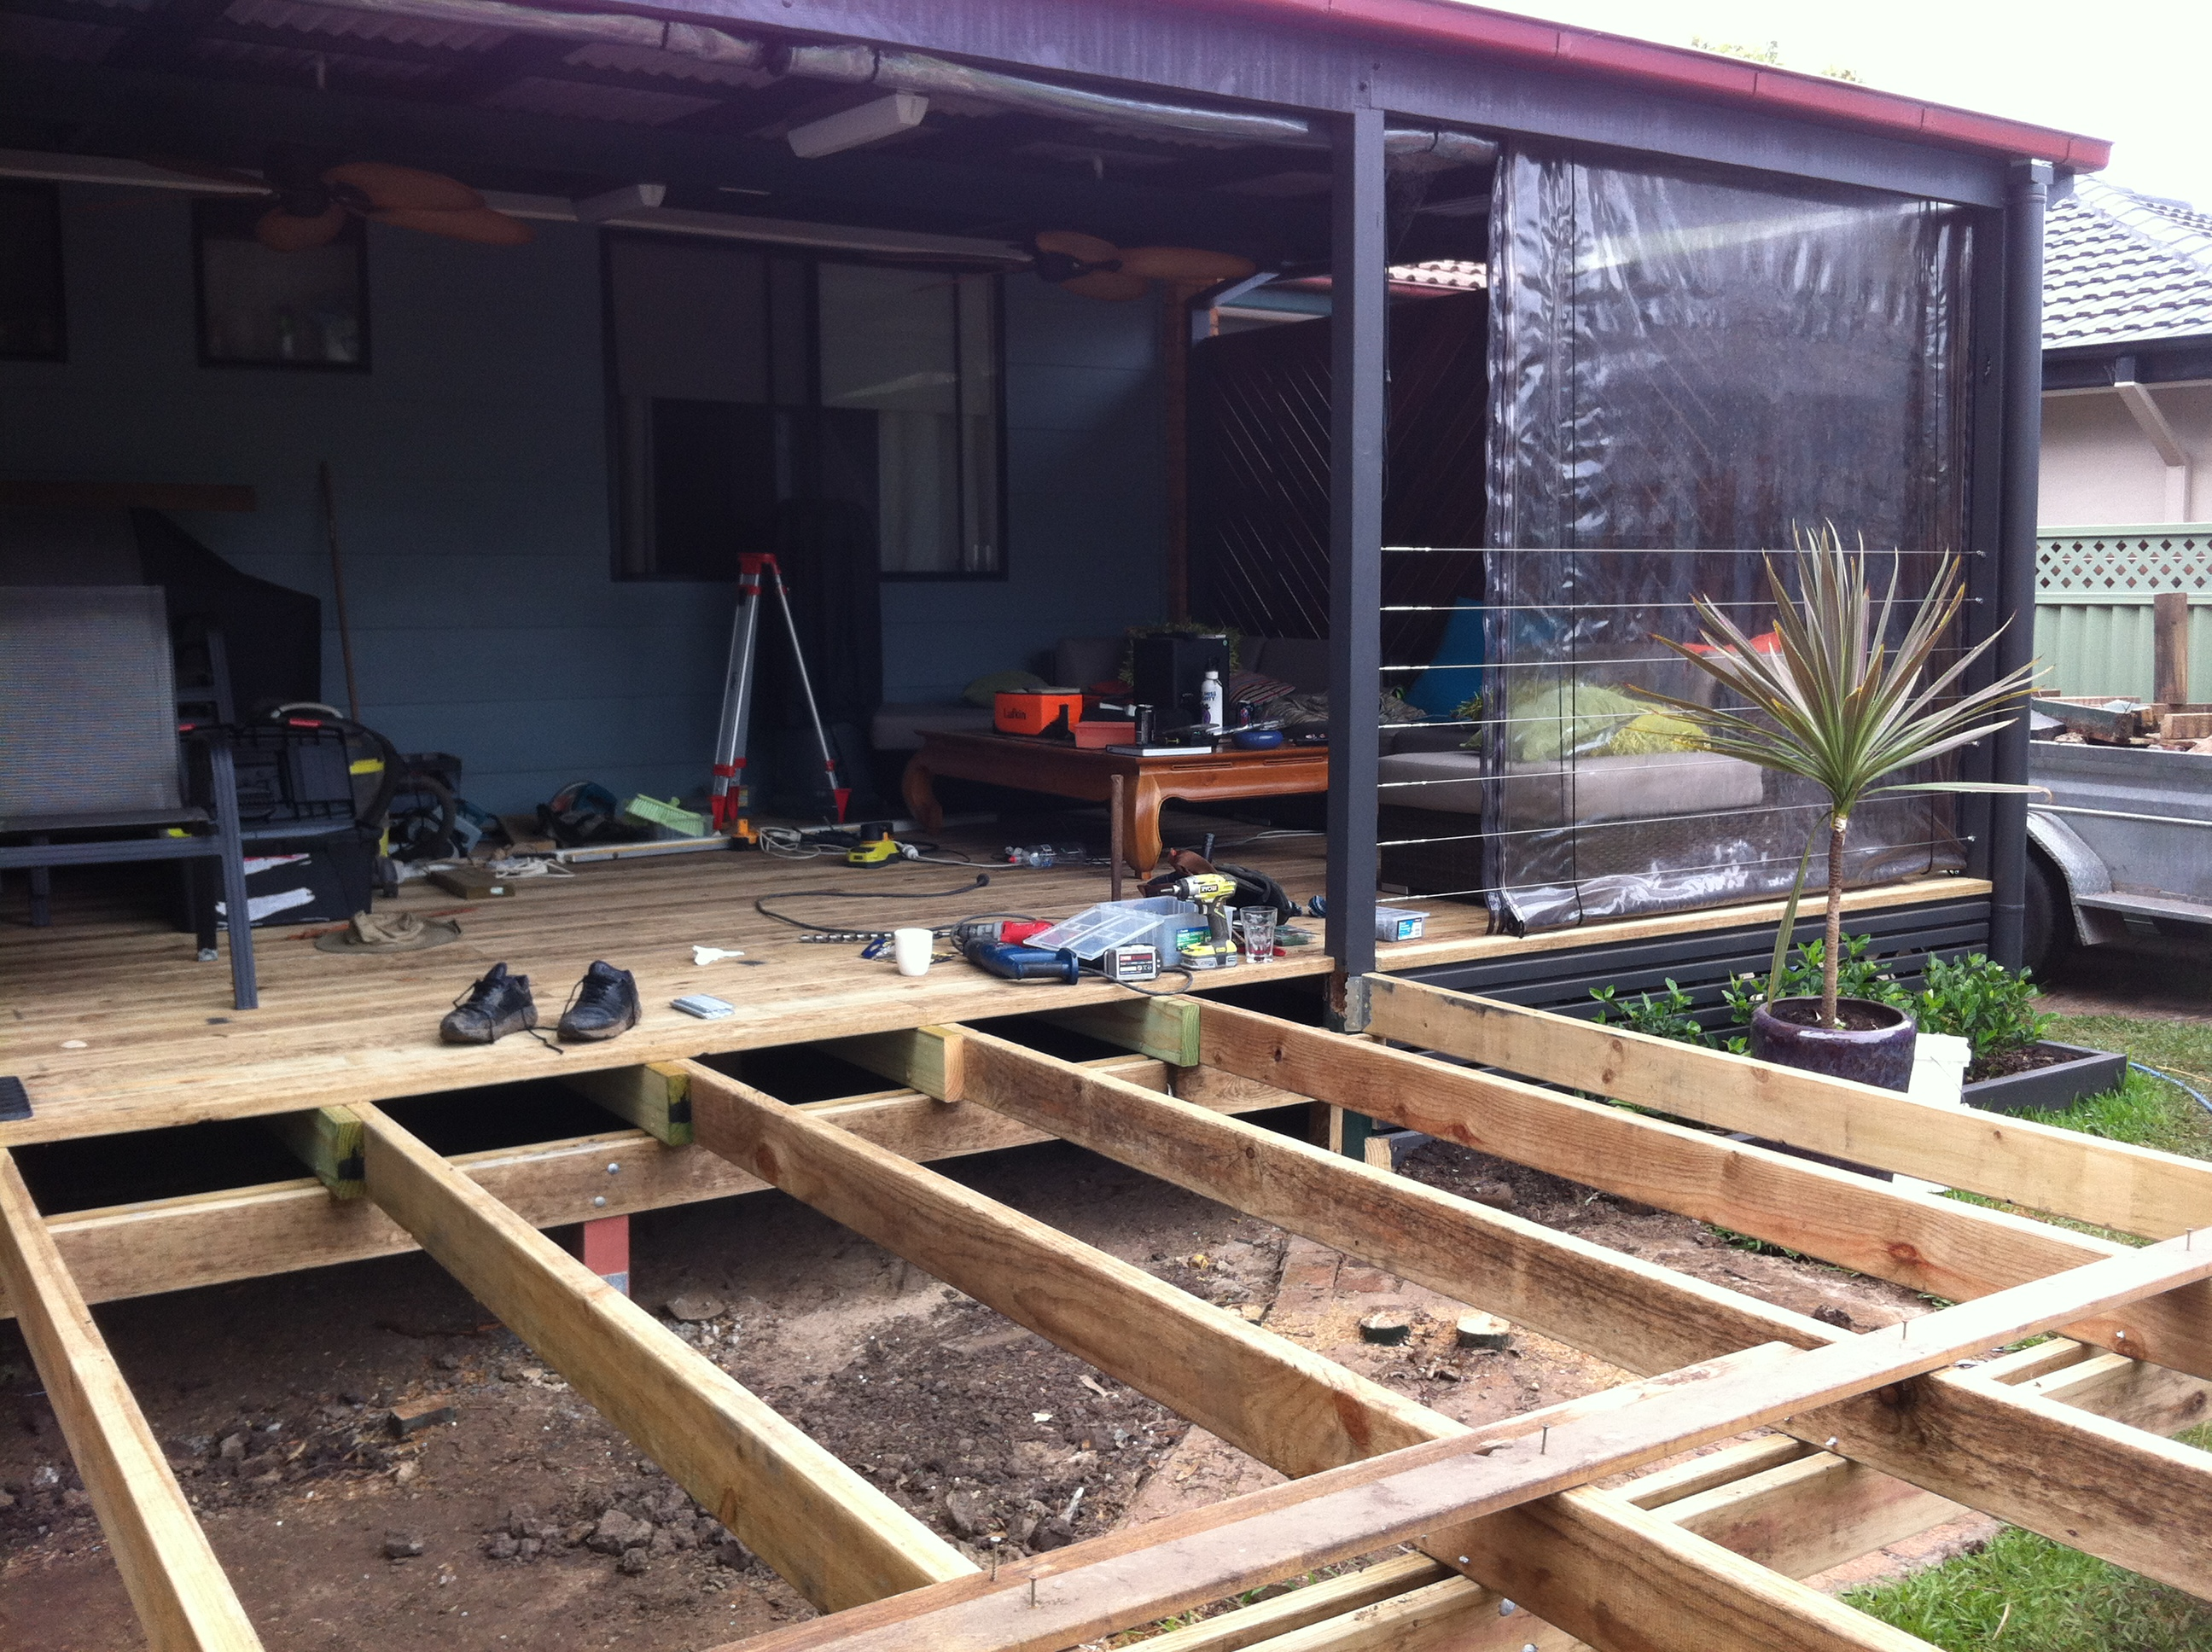 new decking coming through from under roof area